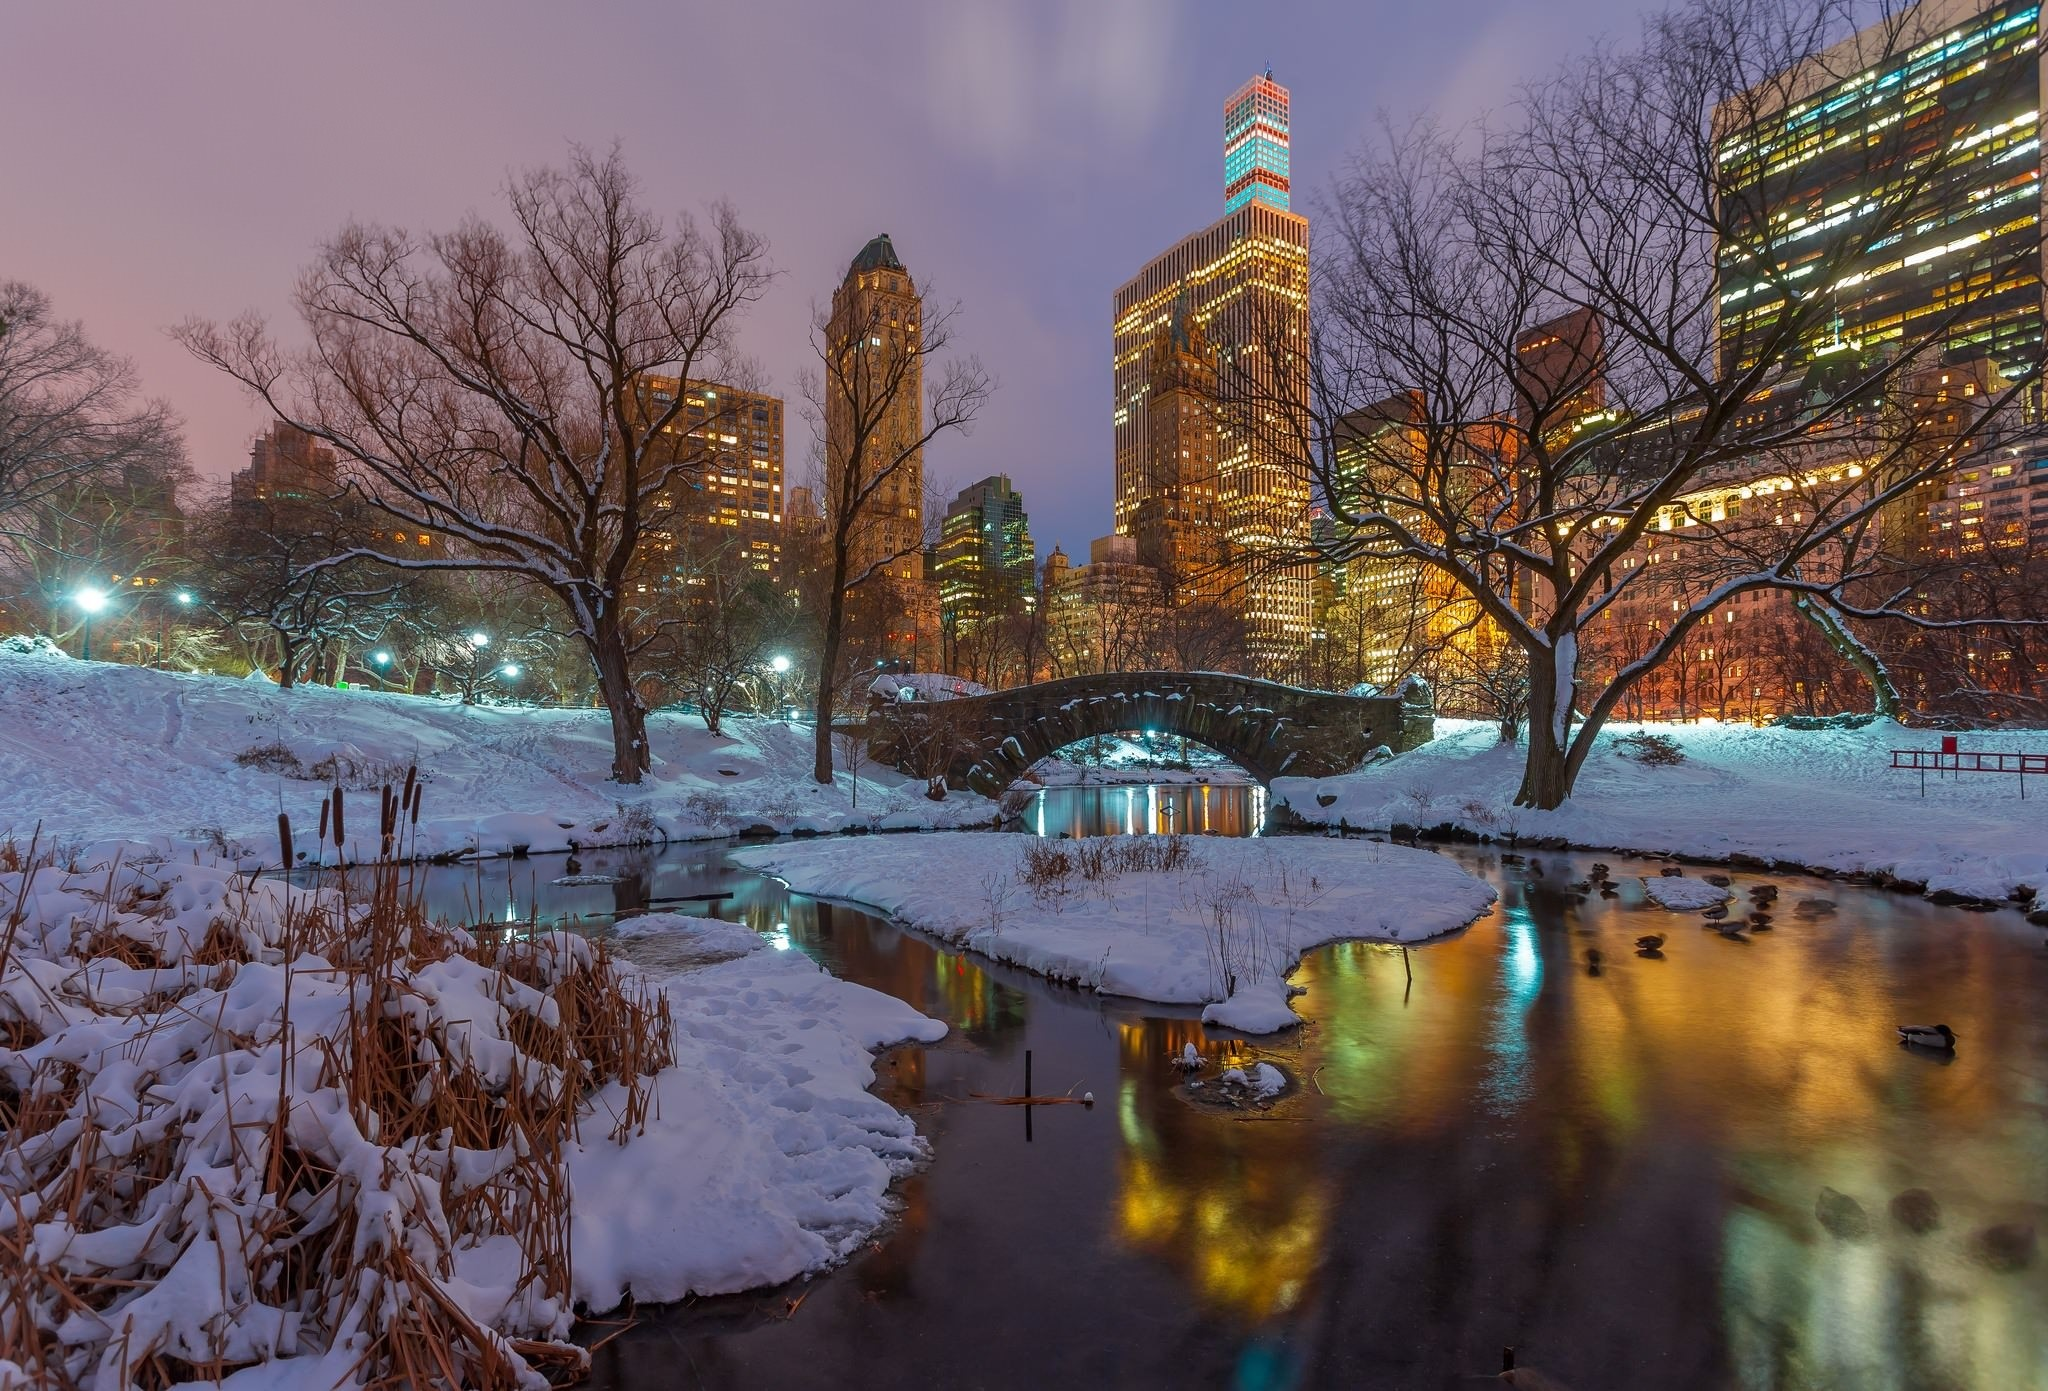 Wallpaper Central park, skyscrapers, reflection, snow, Gapstow Bridge,  winter, trees, ducks, New York » City, nature, landscapes – Free HD Desktop  …